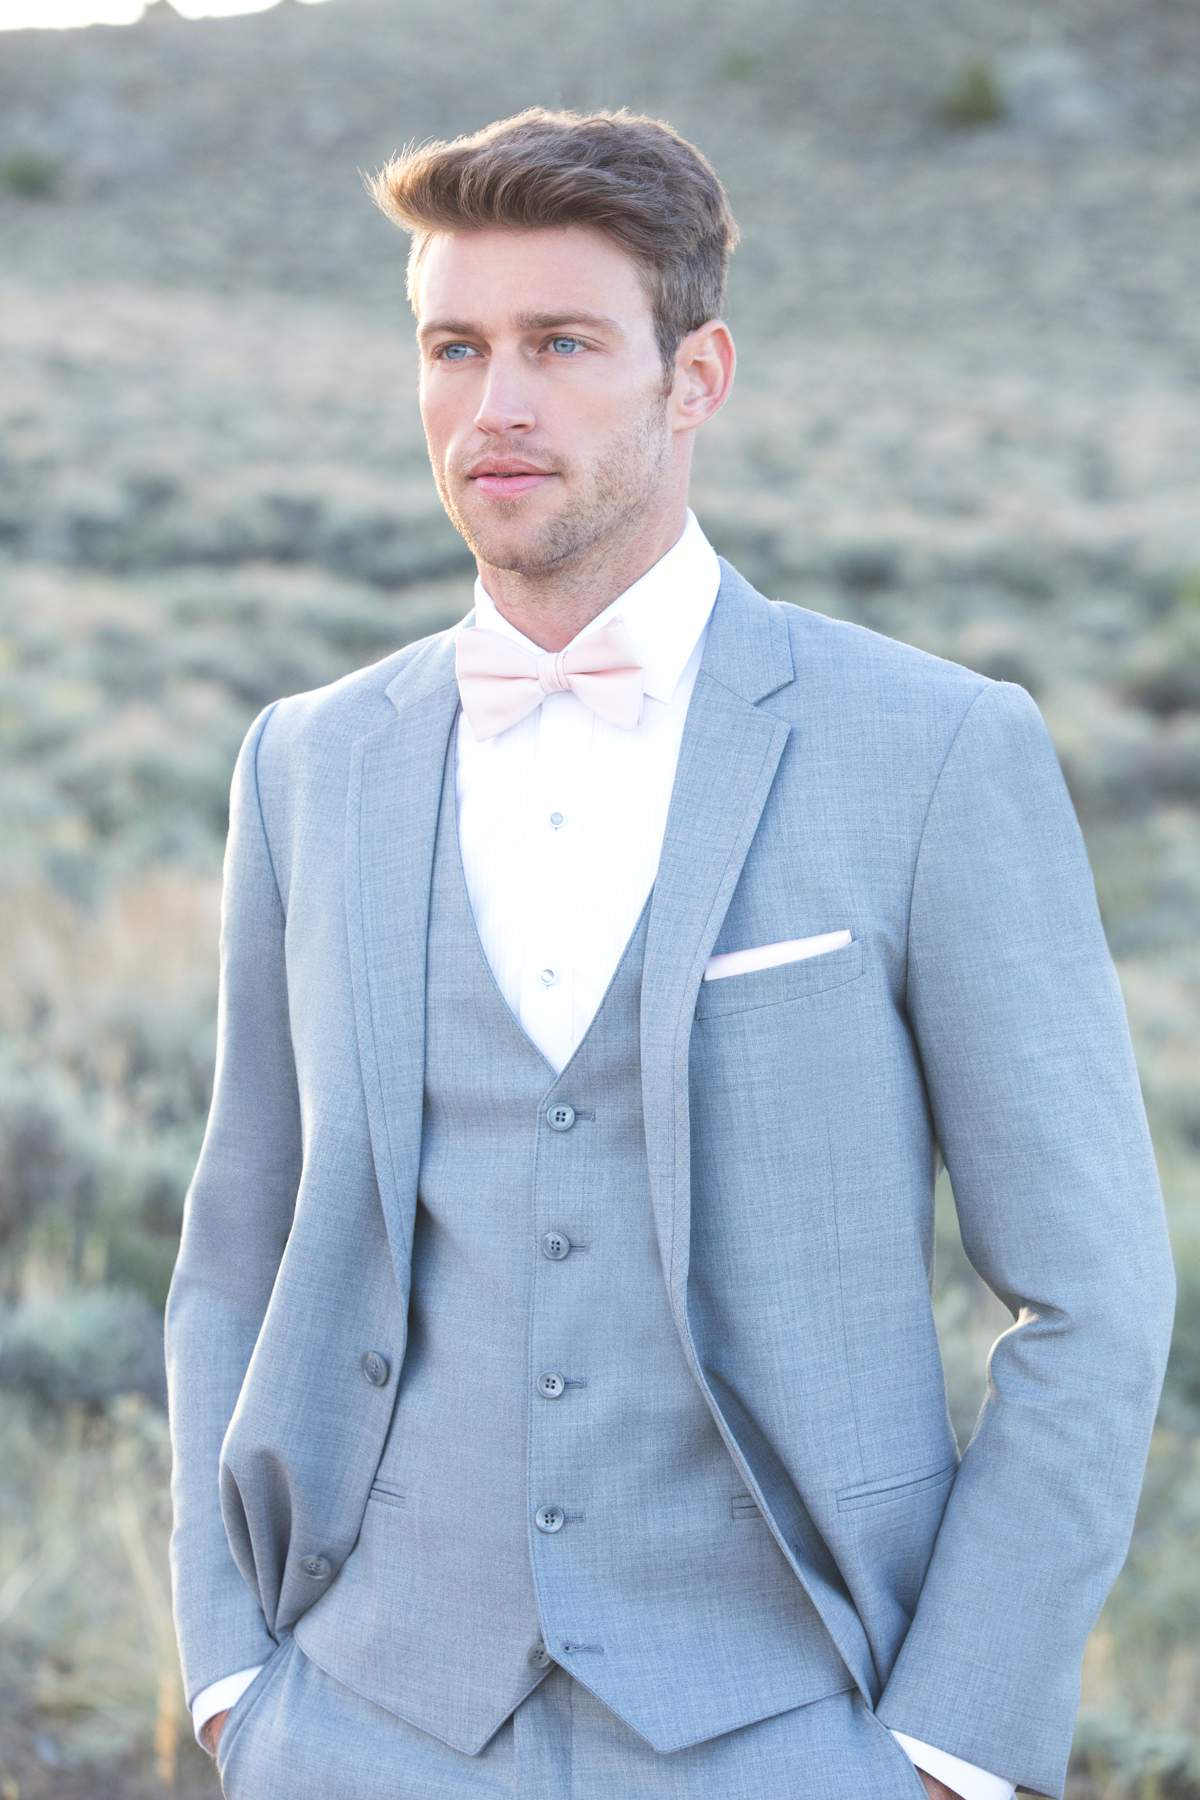 Fine Hugo Boss Wedding Suit Adornment - Colorful Wedding Dress Ideas ...